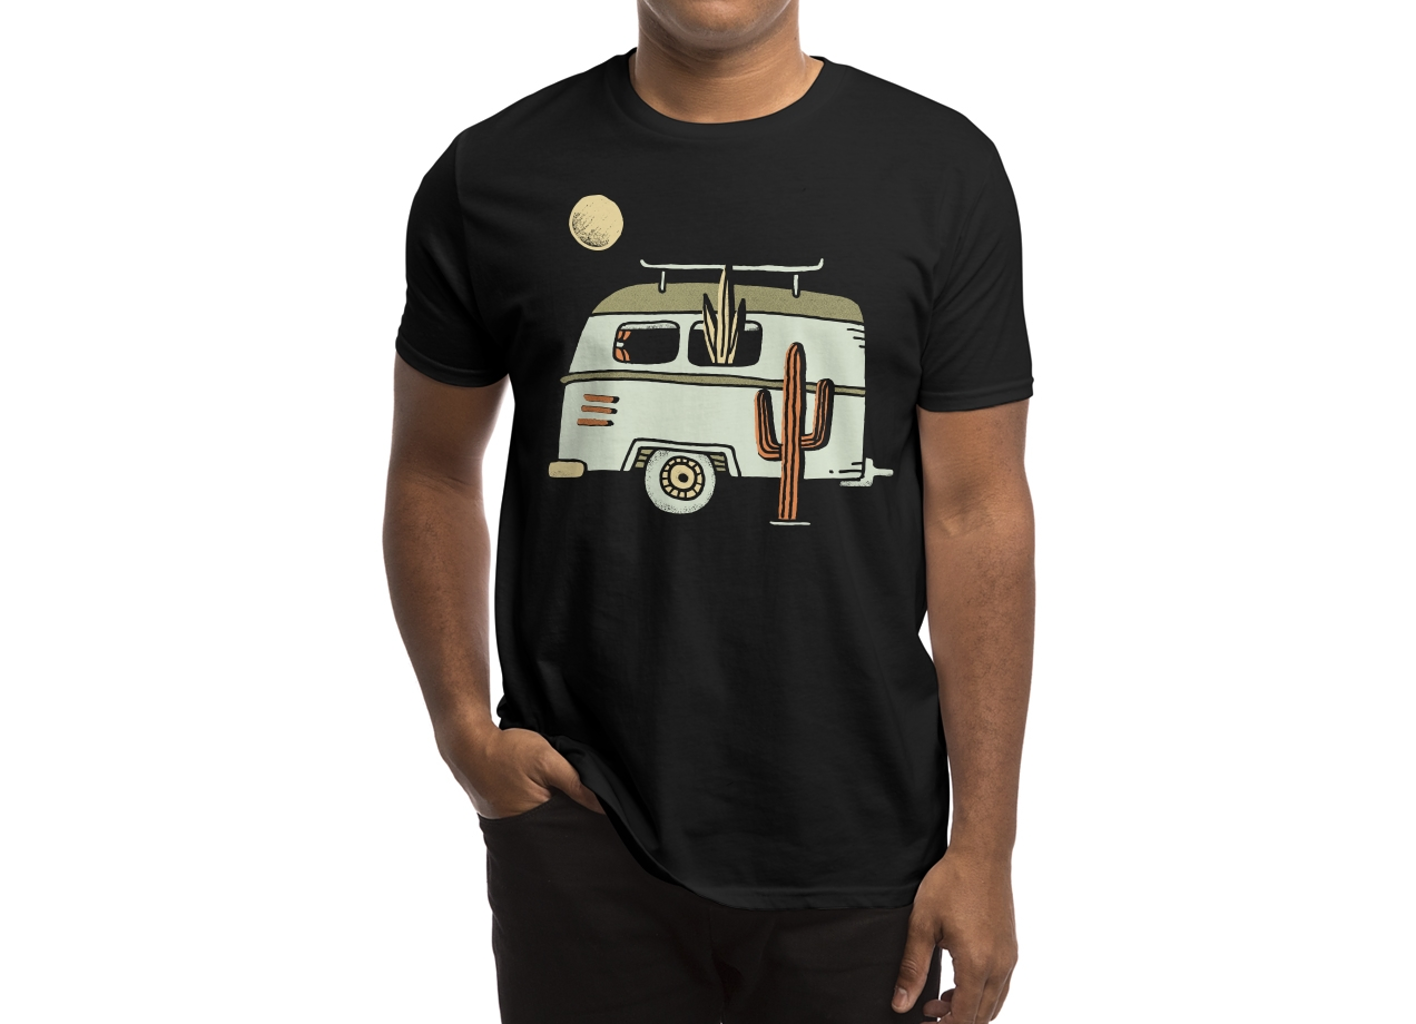 Threadless: Van Life